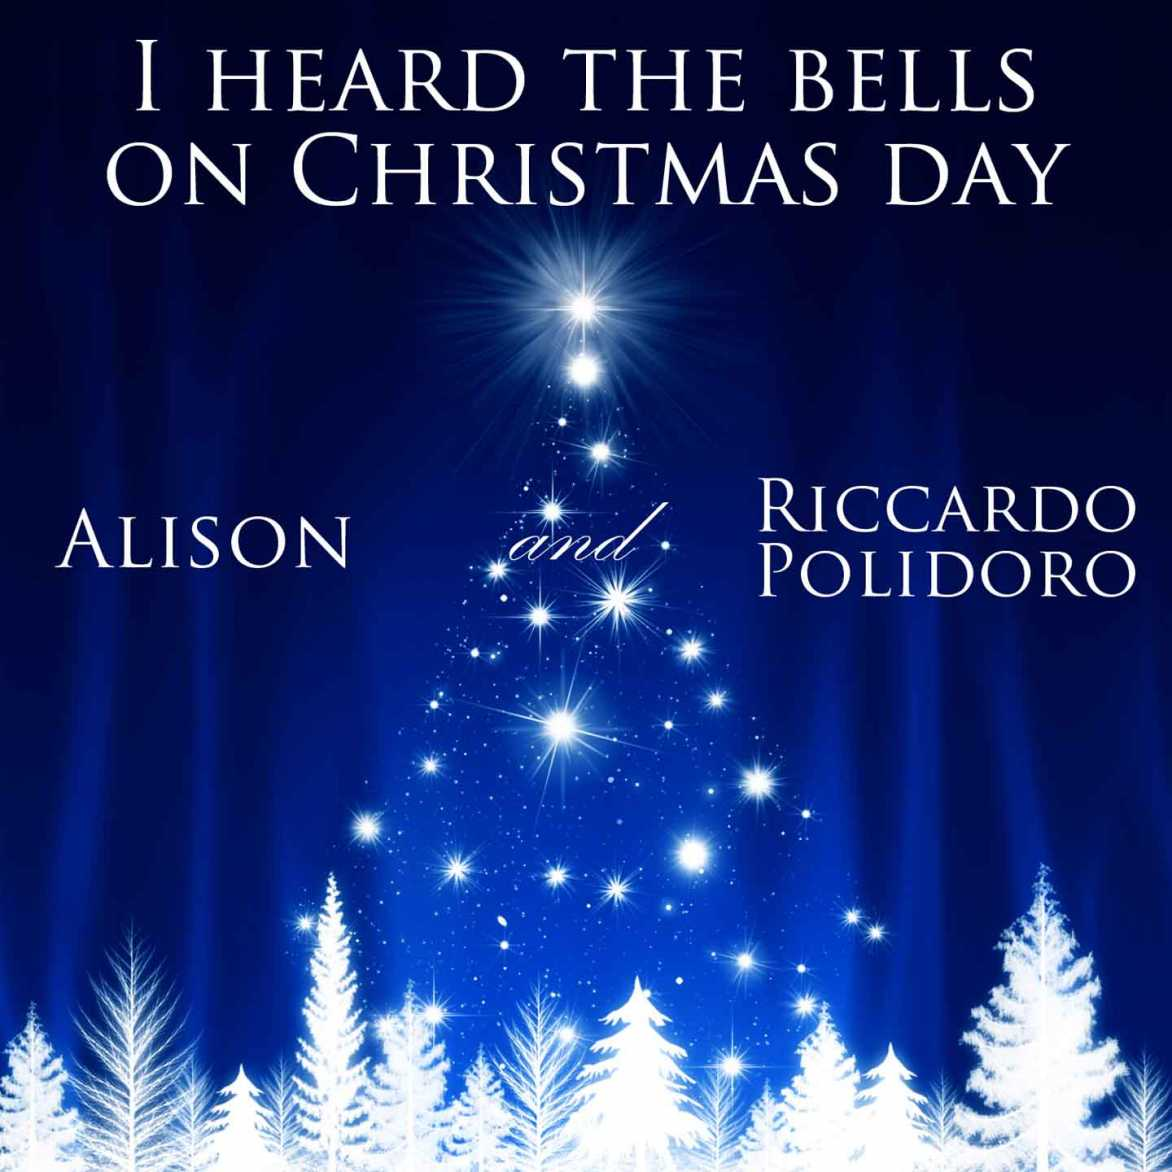 christmas day casting crowns i heard the bells on christmas - Casting Crowns I Heard The Bells On Christmas Day